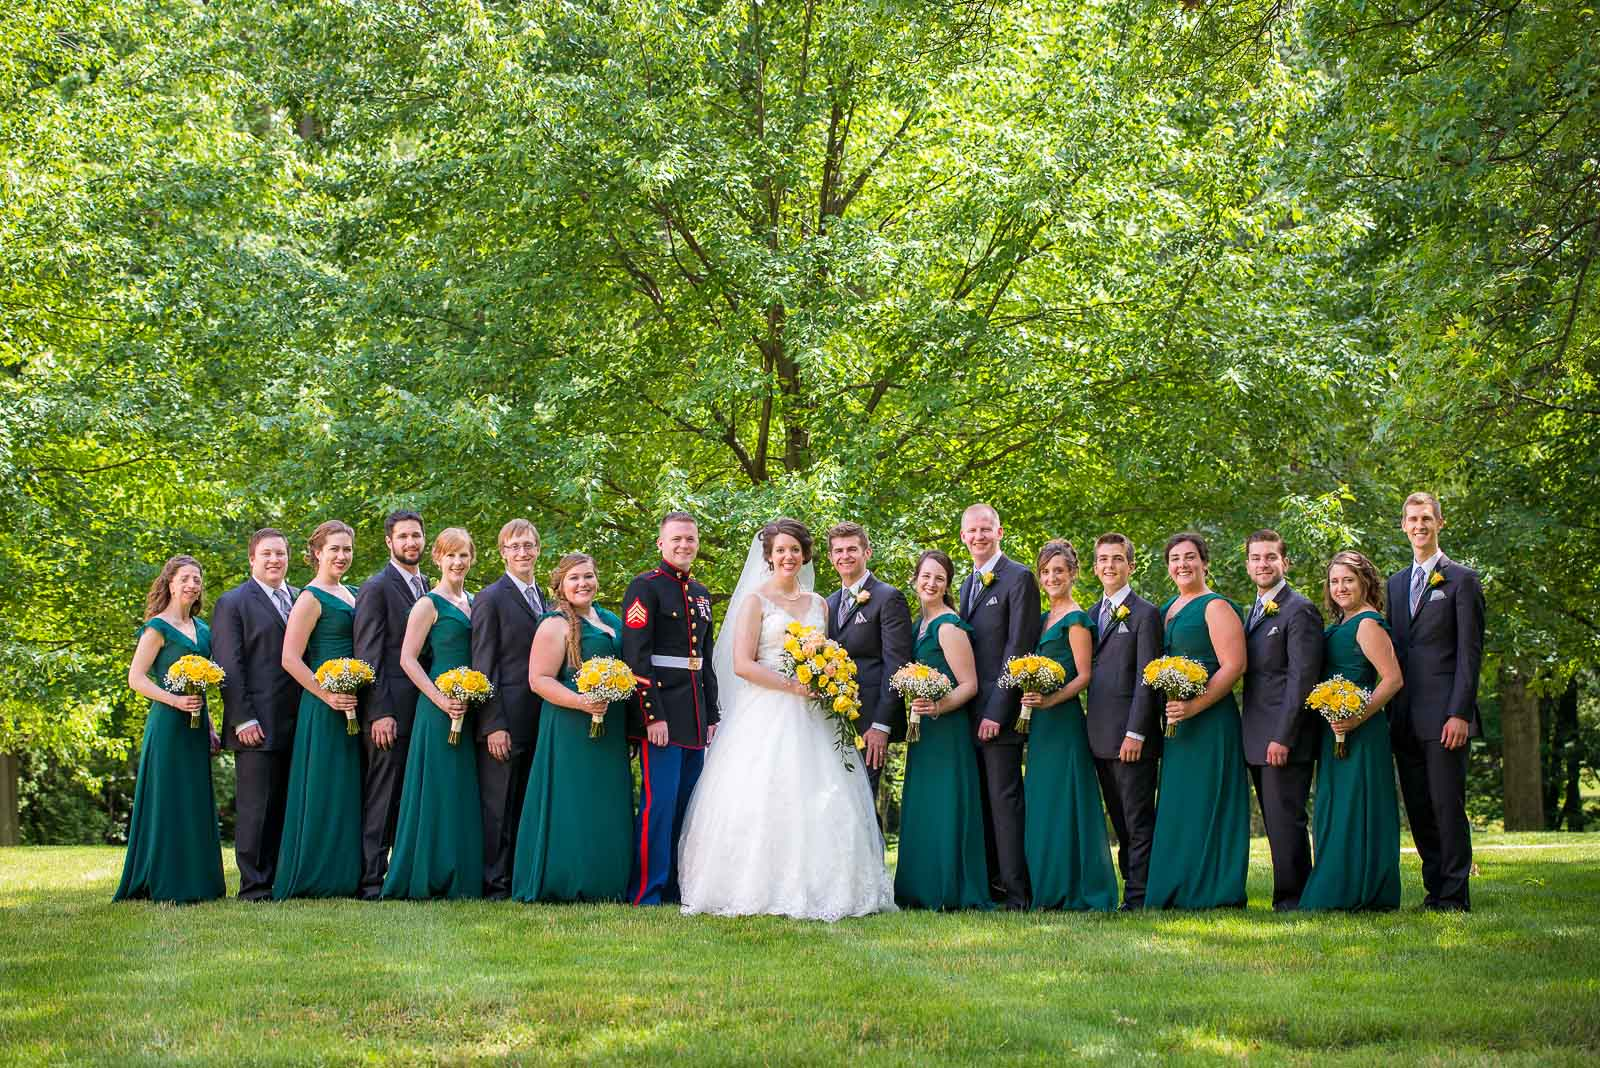 Eric_and_Christy_Photography_Blog_Wedding_Kelly_Michael-17